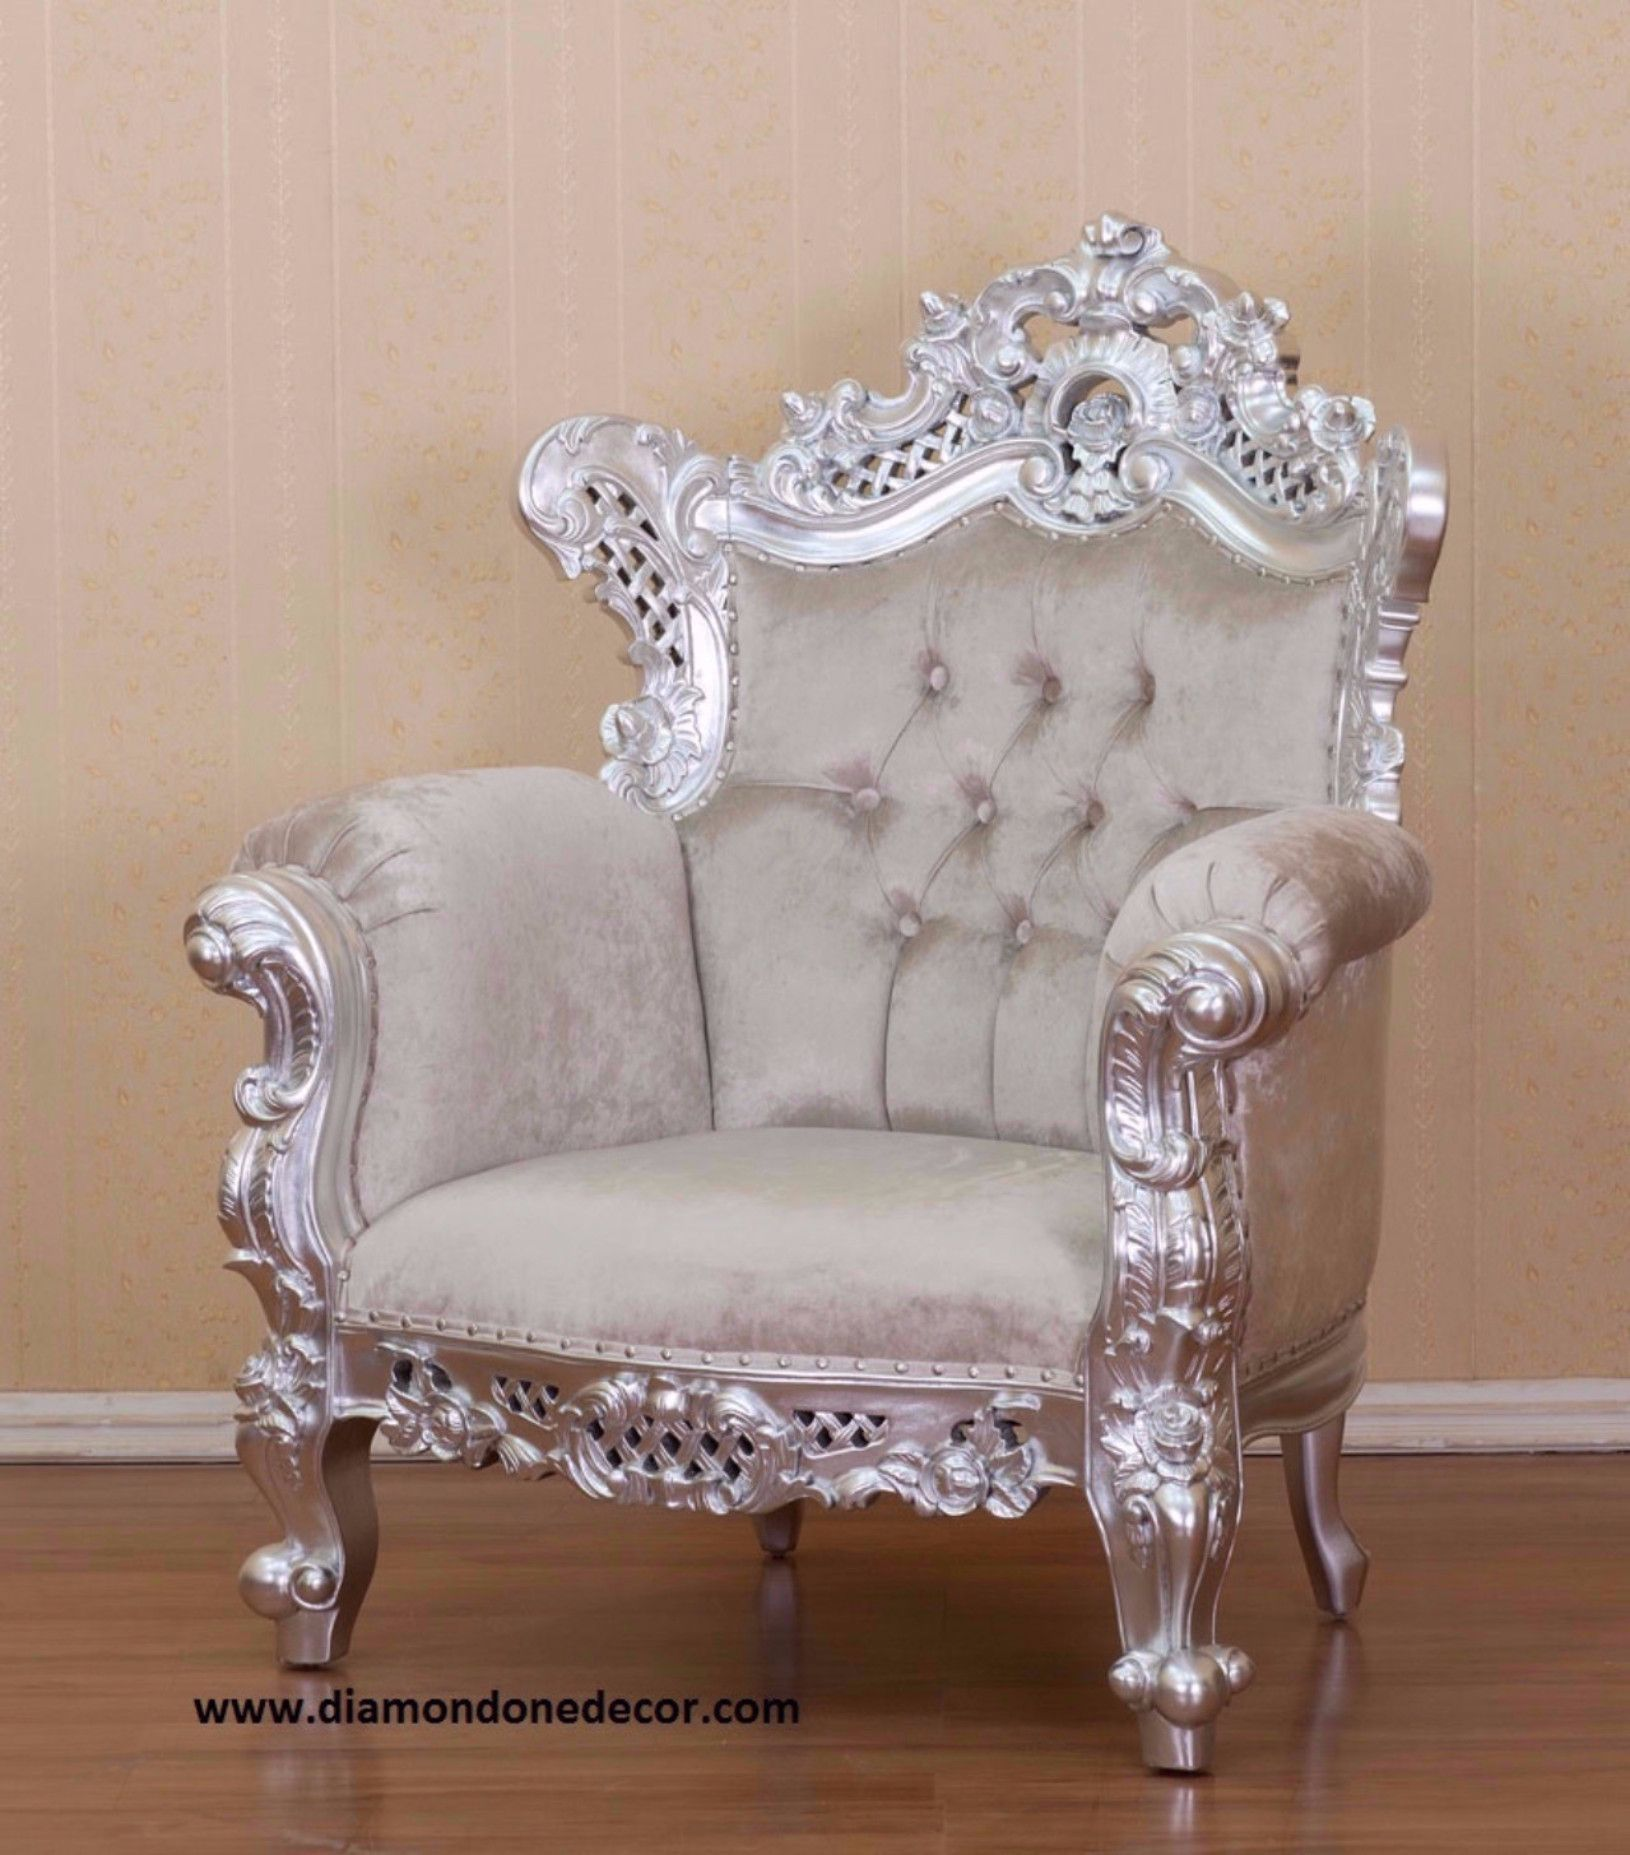 Budreau Fabulous Baroque French Reproduction Louis Xvi Chair Clic Home Decor House